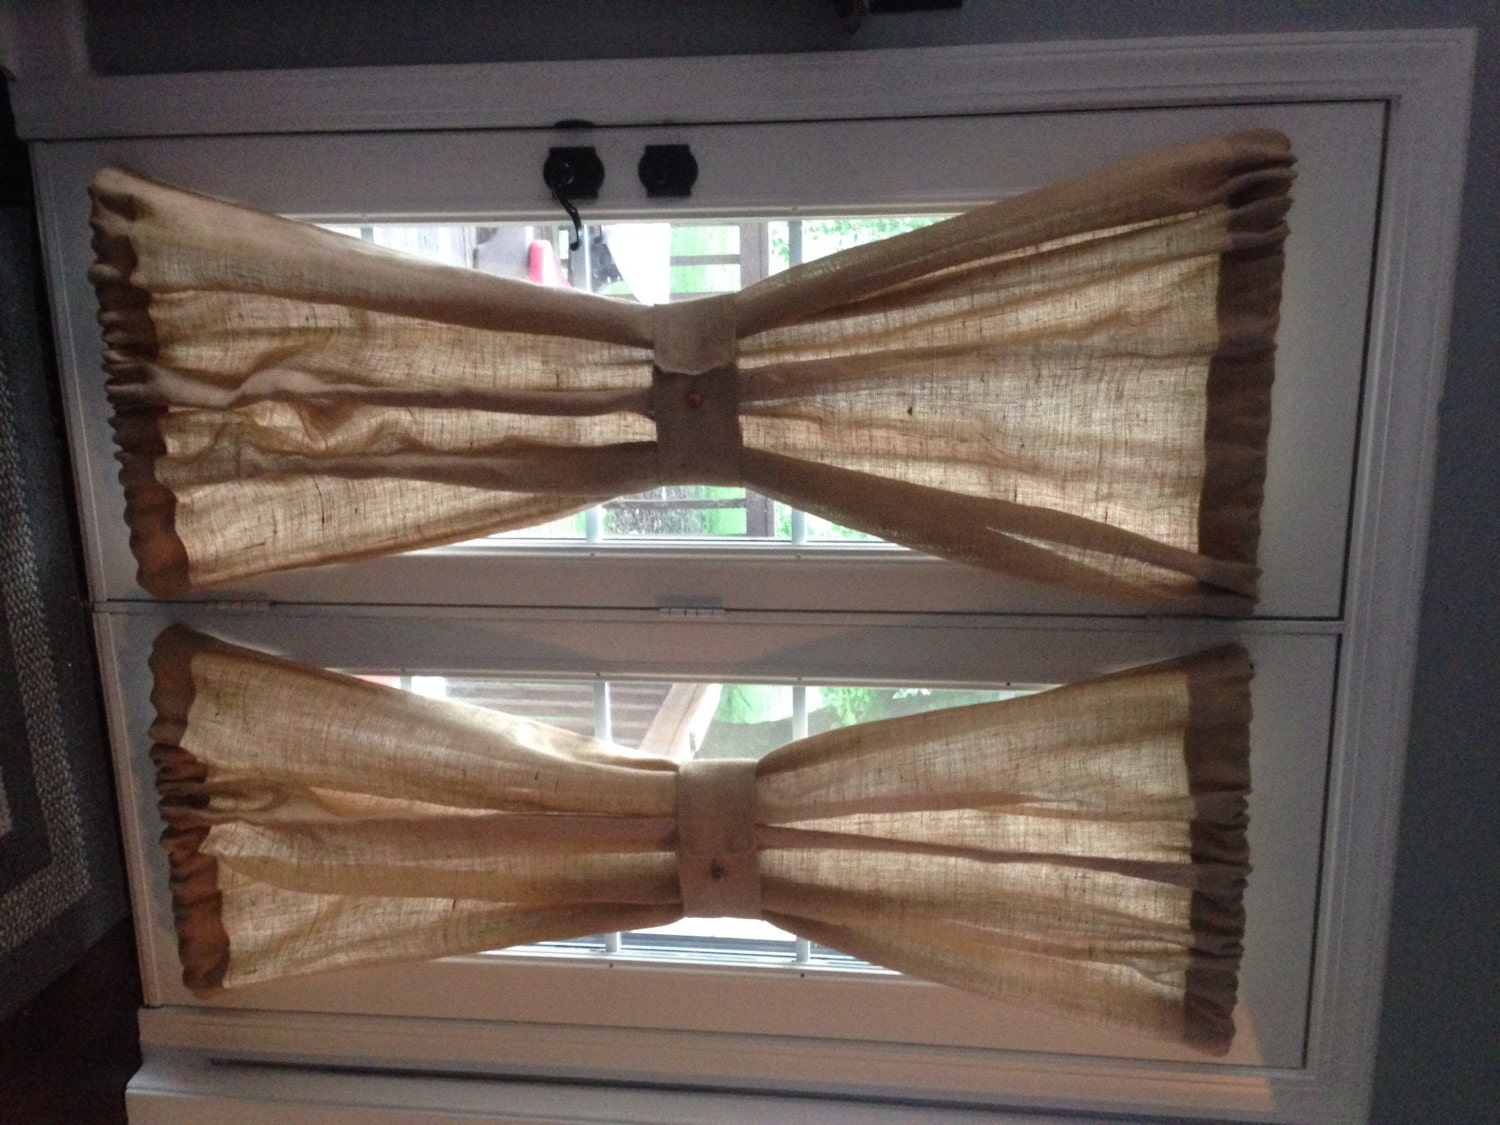 Green Bay Packers Curtains Sheer Curtains For Sunroom